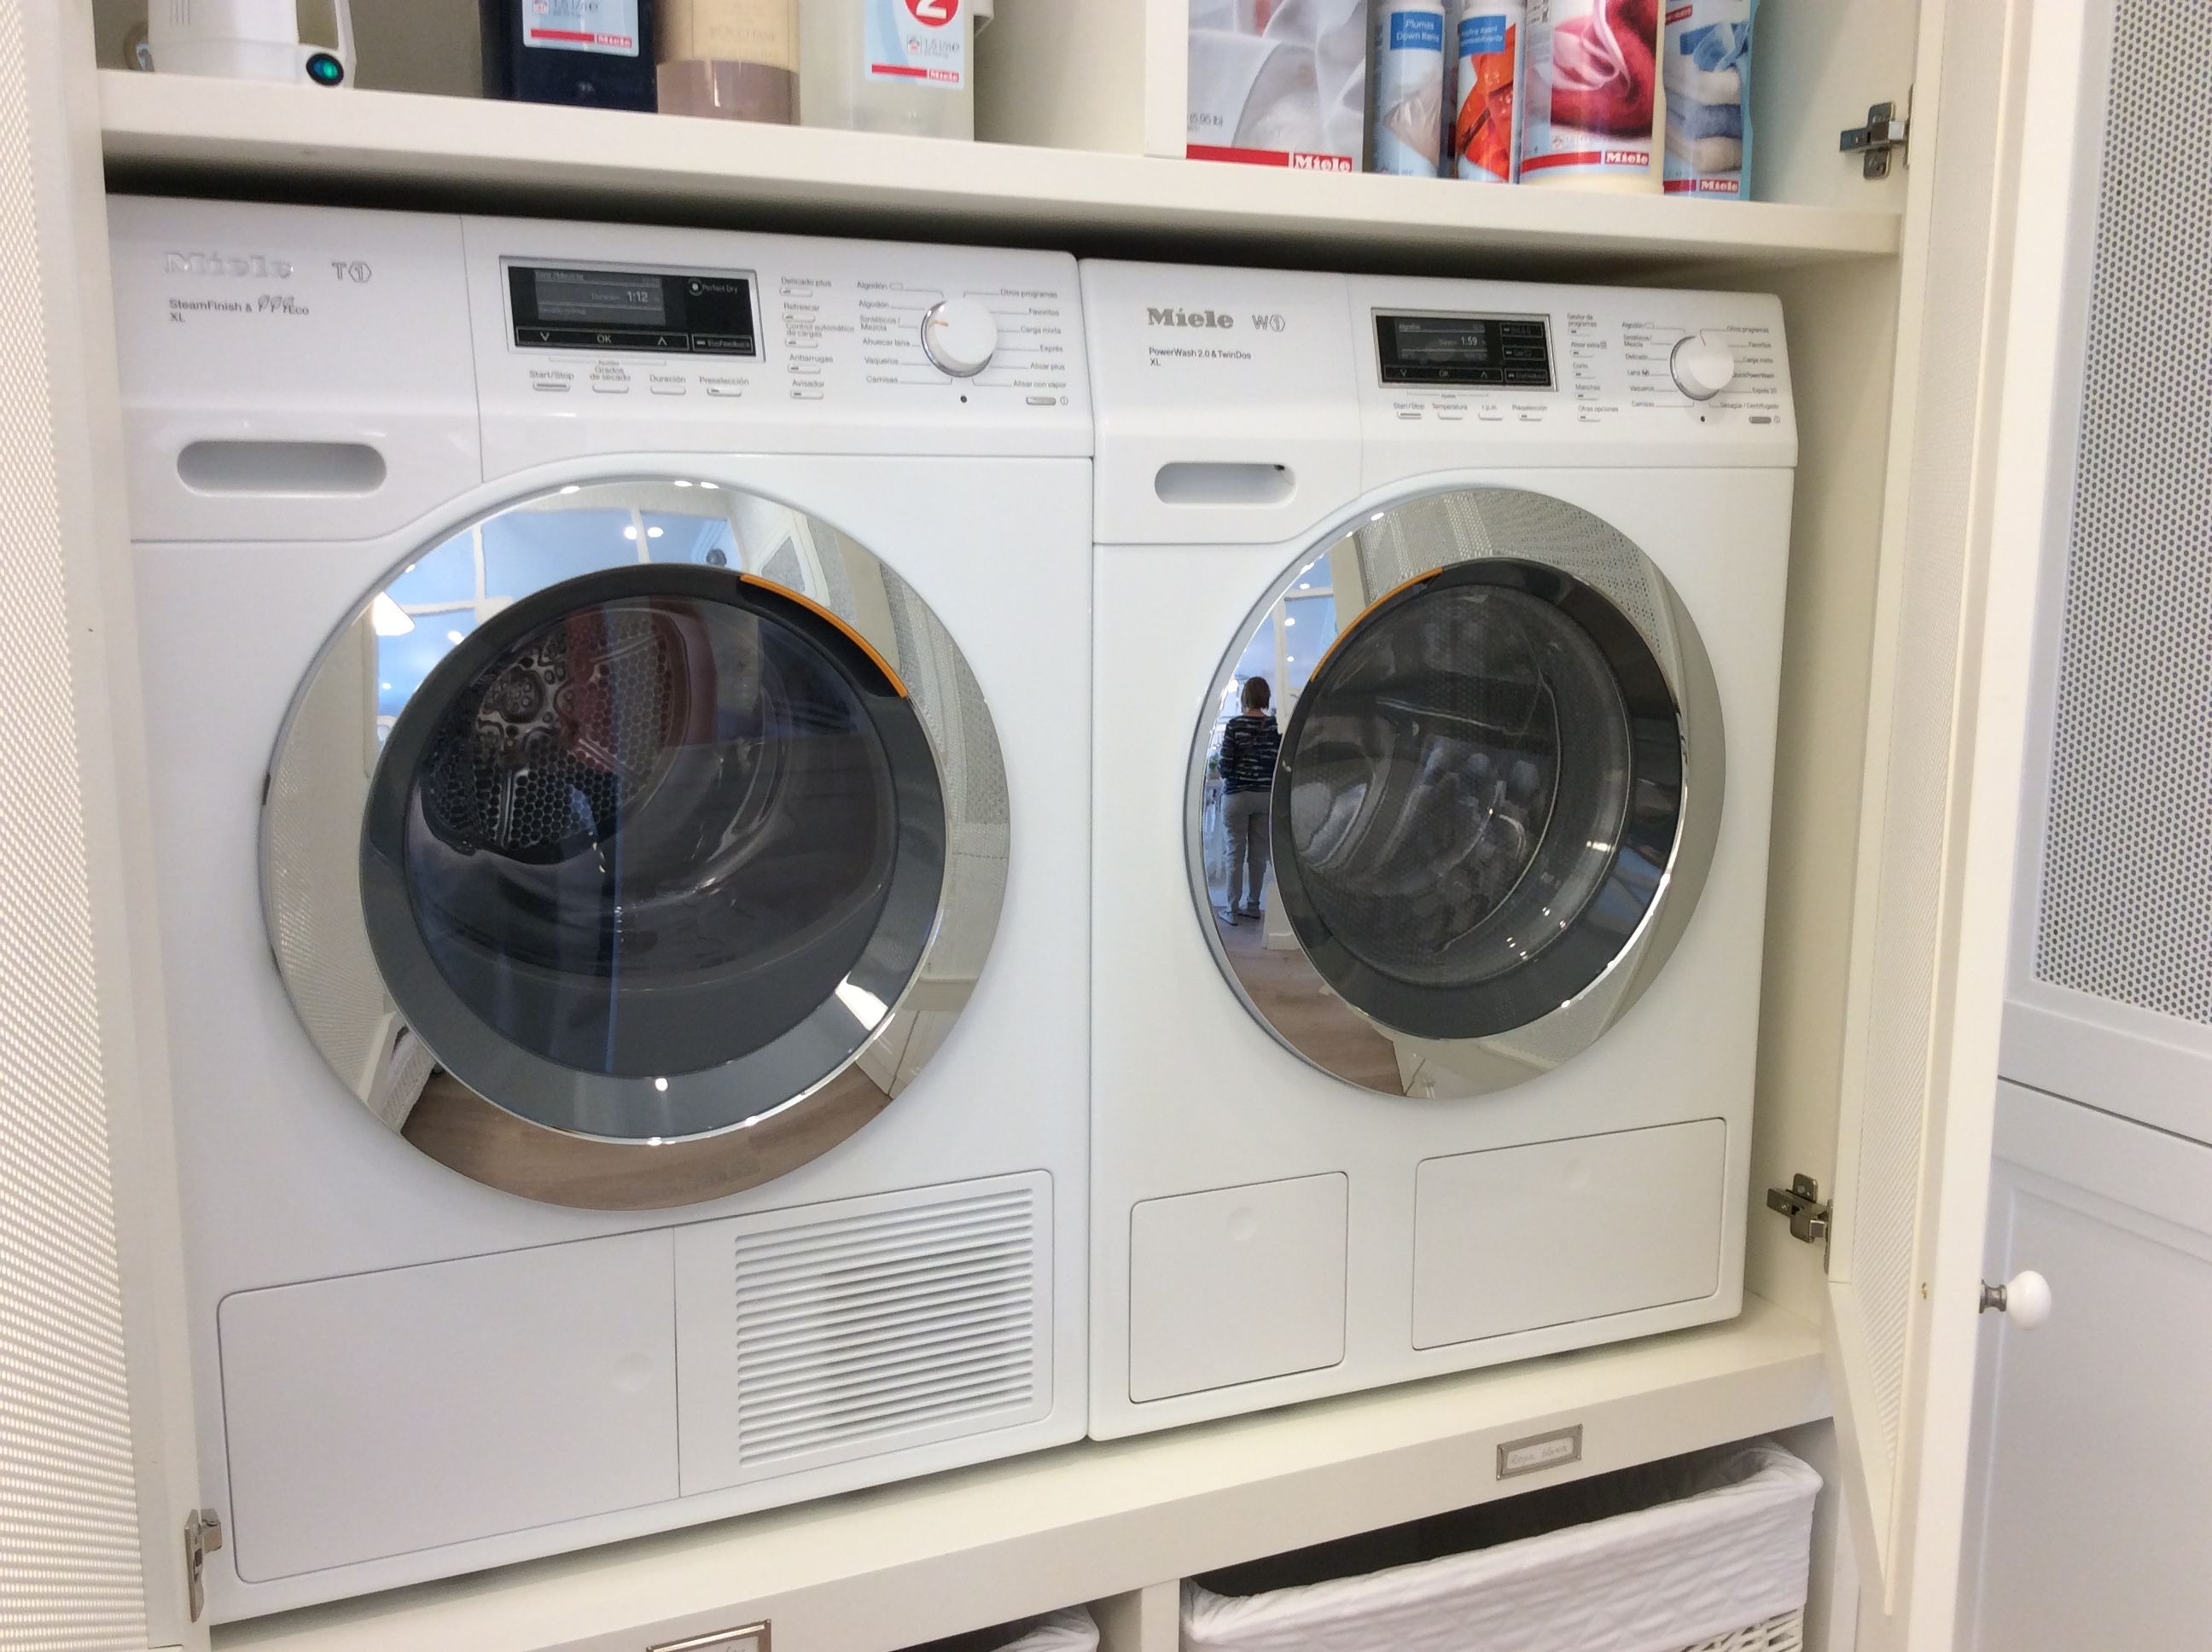 Washer, Kitchens, Washing Machine, Washing Machines